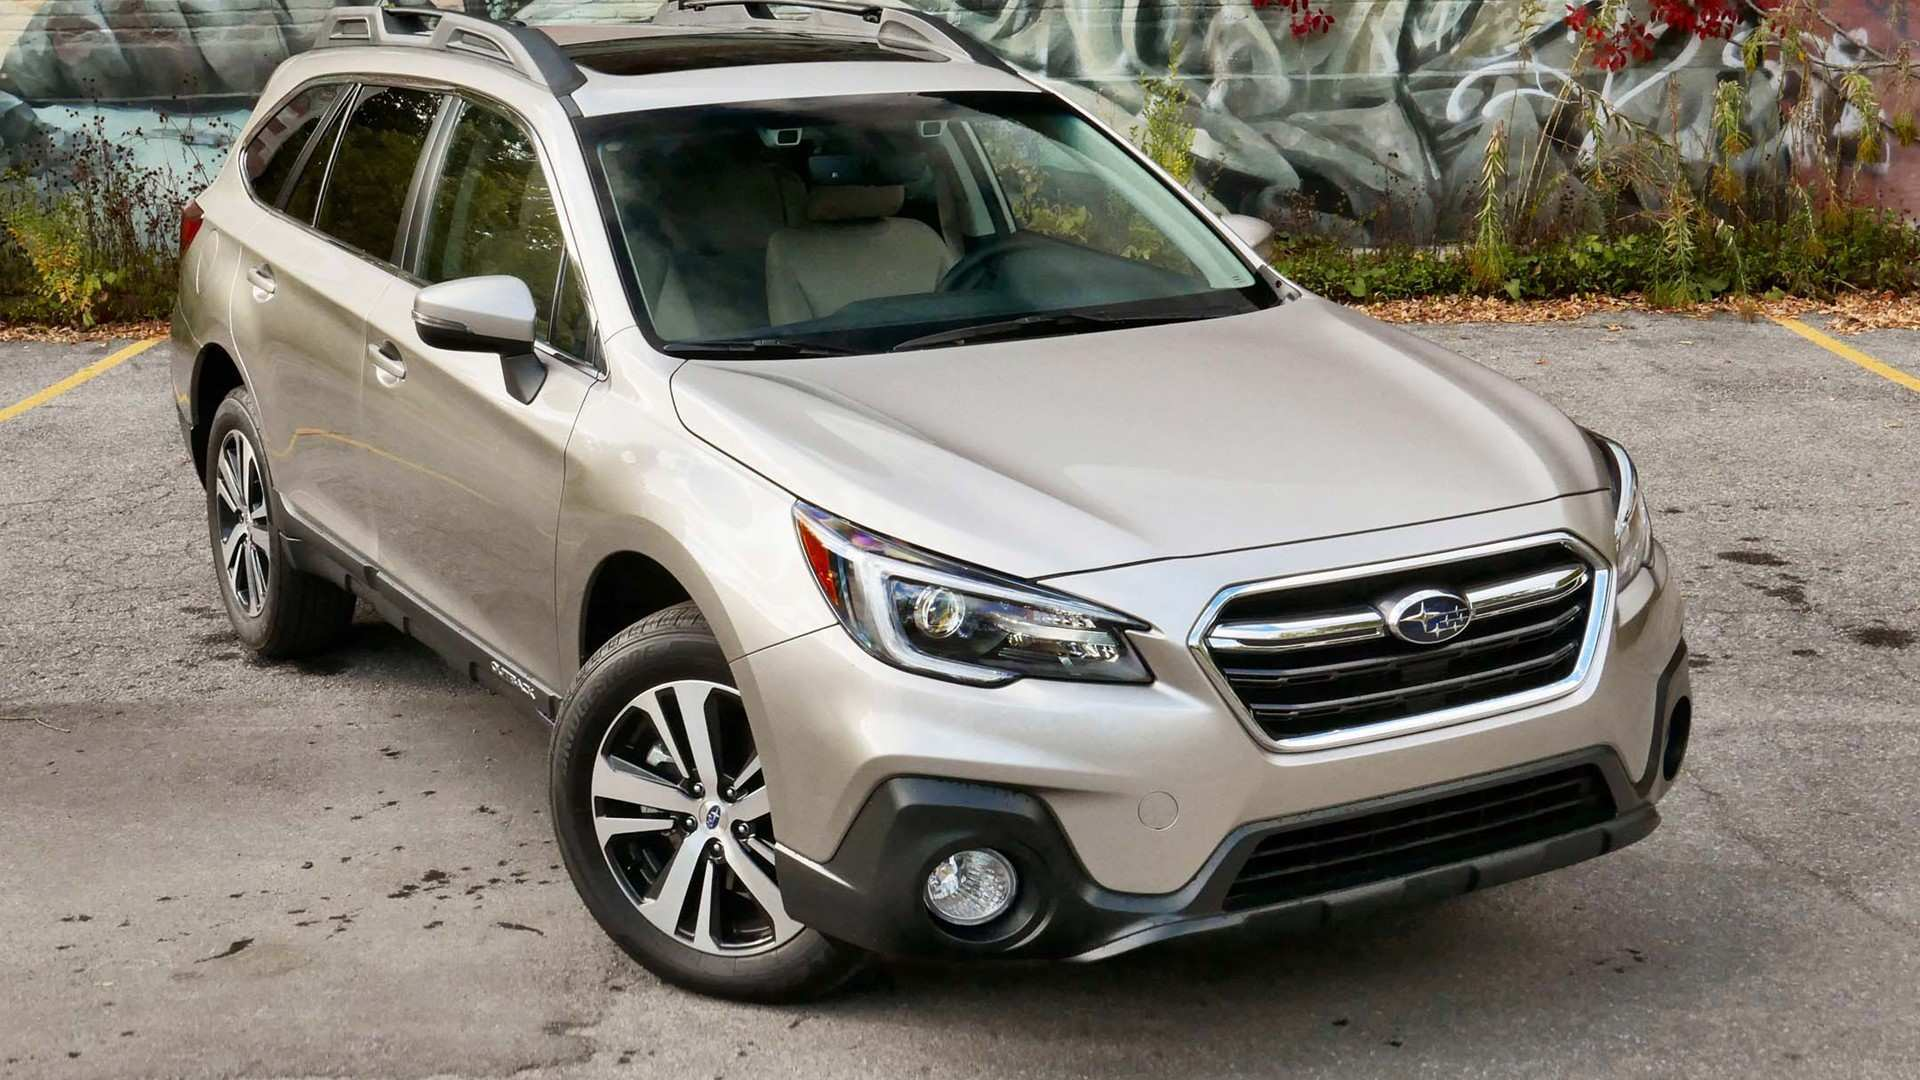 70 Best Review Best Subaru Outback 2019 Canada Review Performance and New Engine with Best Subaru Outback 2019 Canada Review